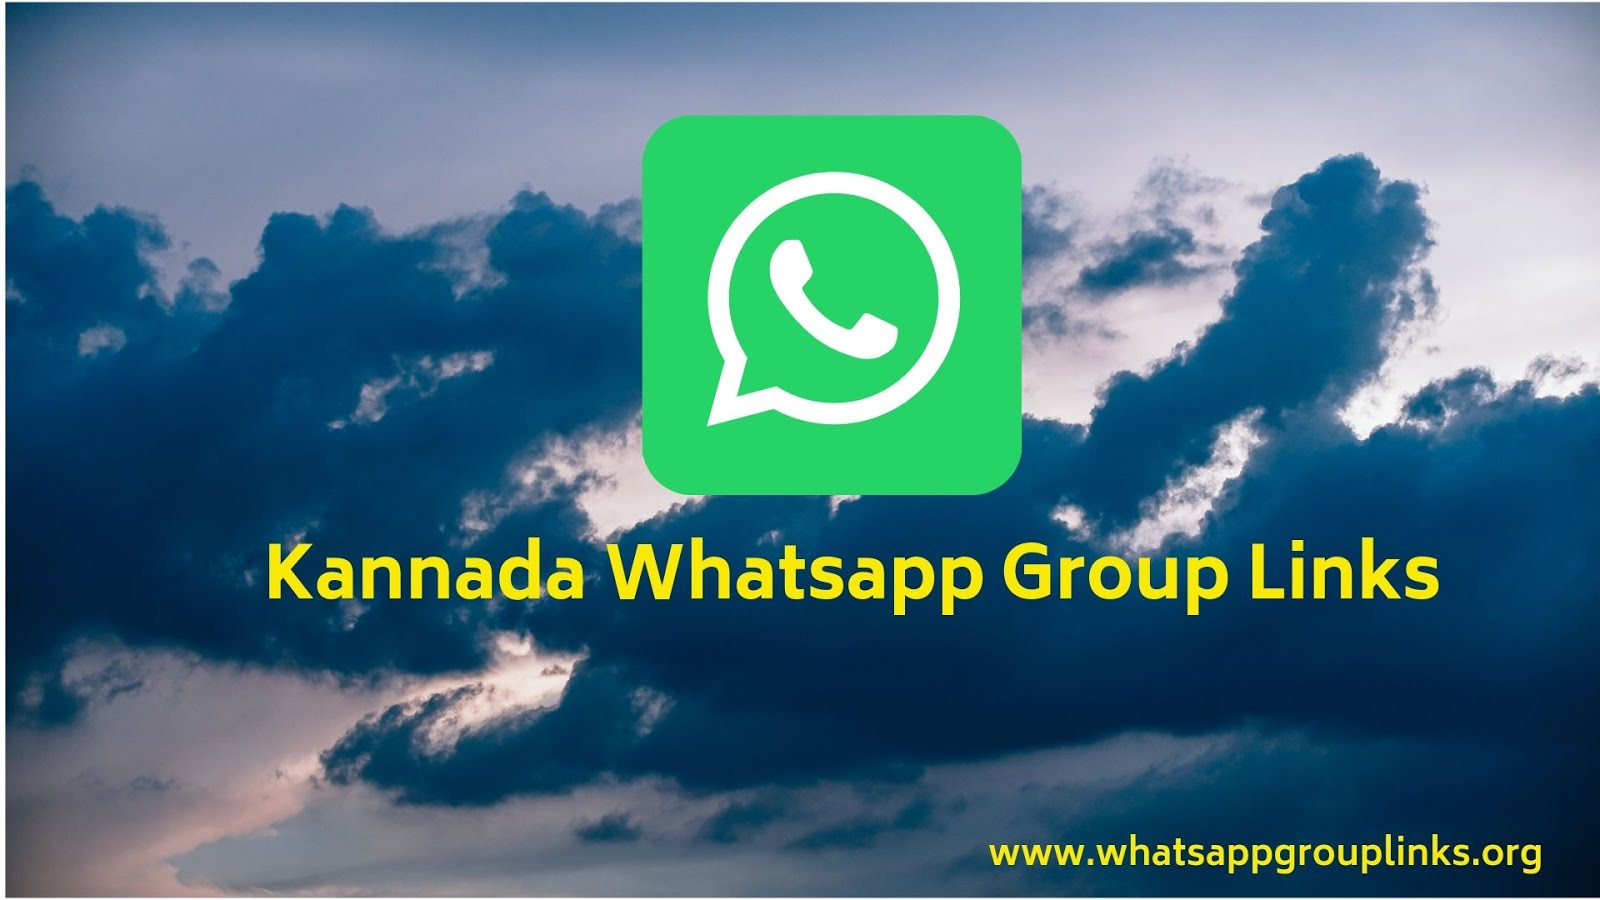 Kannada Whatsapp Group Links - Whatsapp Group Links